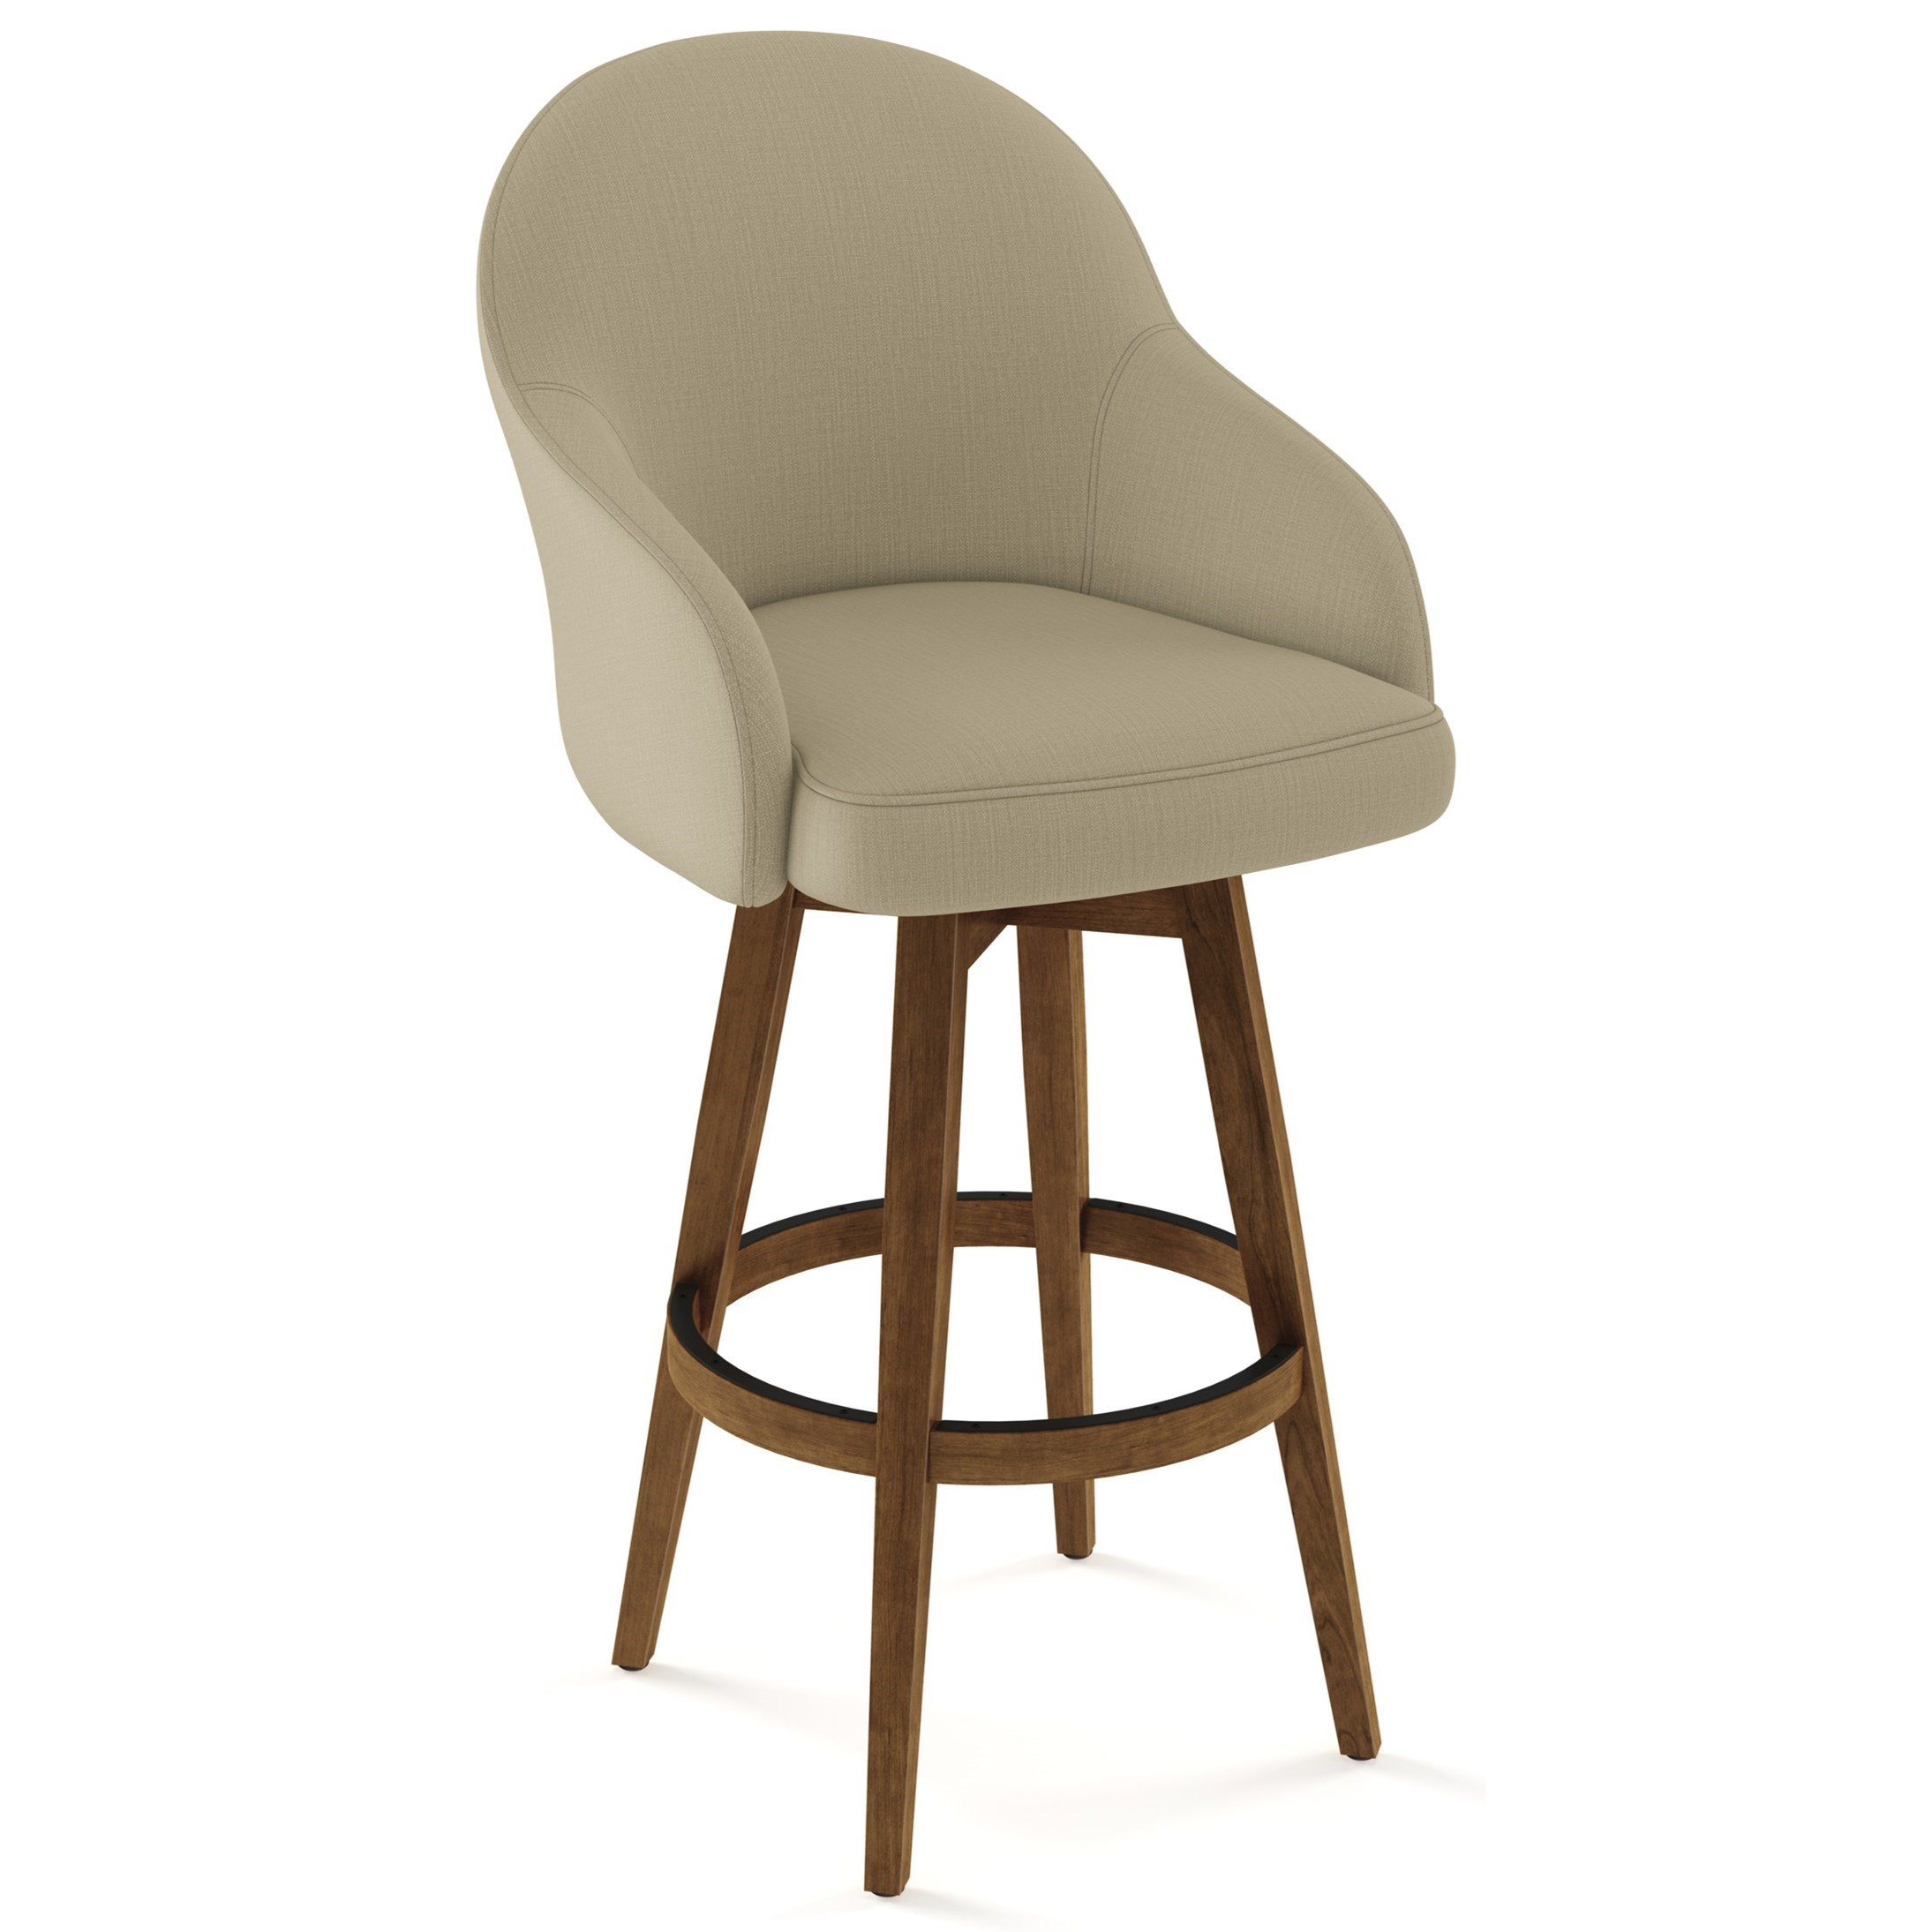 Picture of: Amisco Farmhouse Customizable 30 Collin Swivel Bar Stool With Upholstered Seat And Back Belfort Furniture Bar Stools